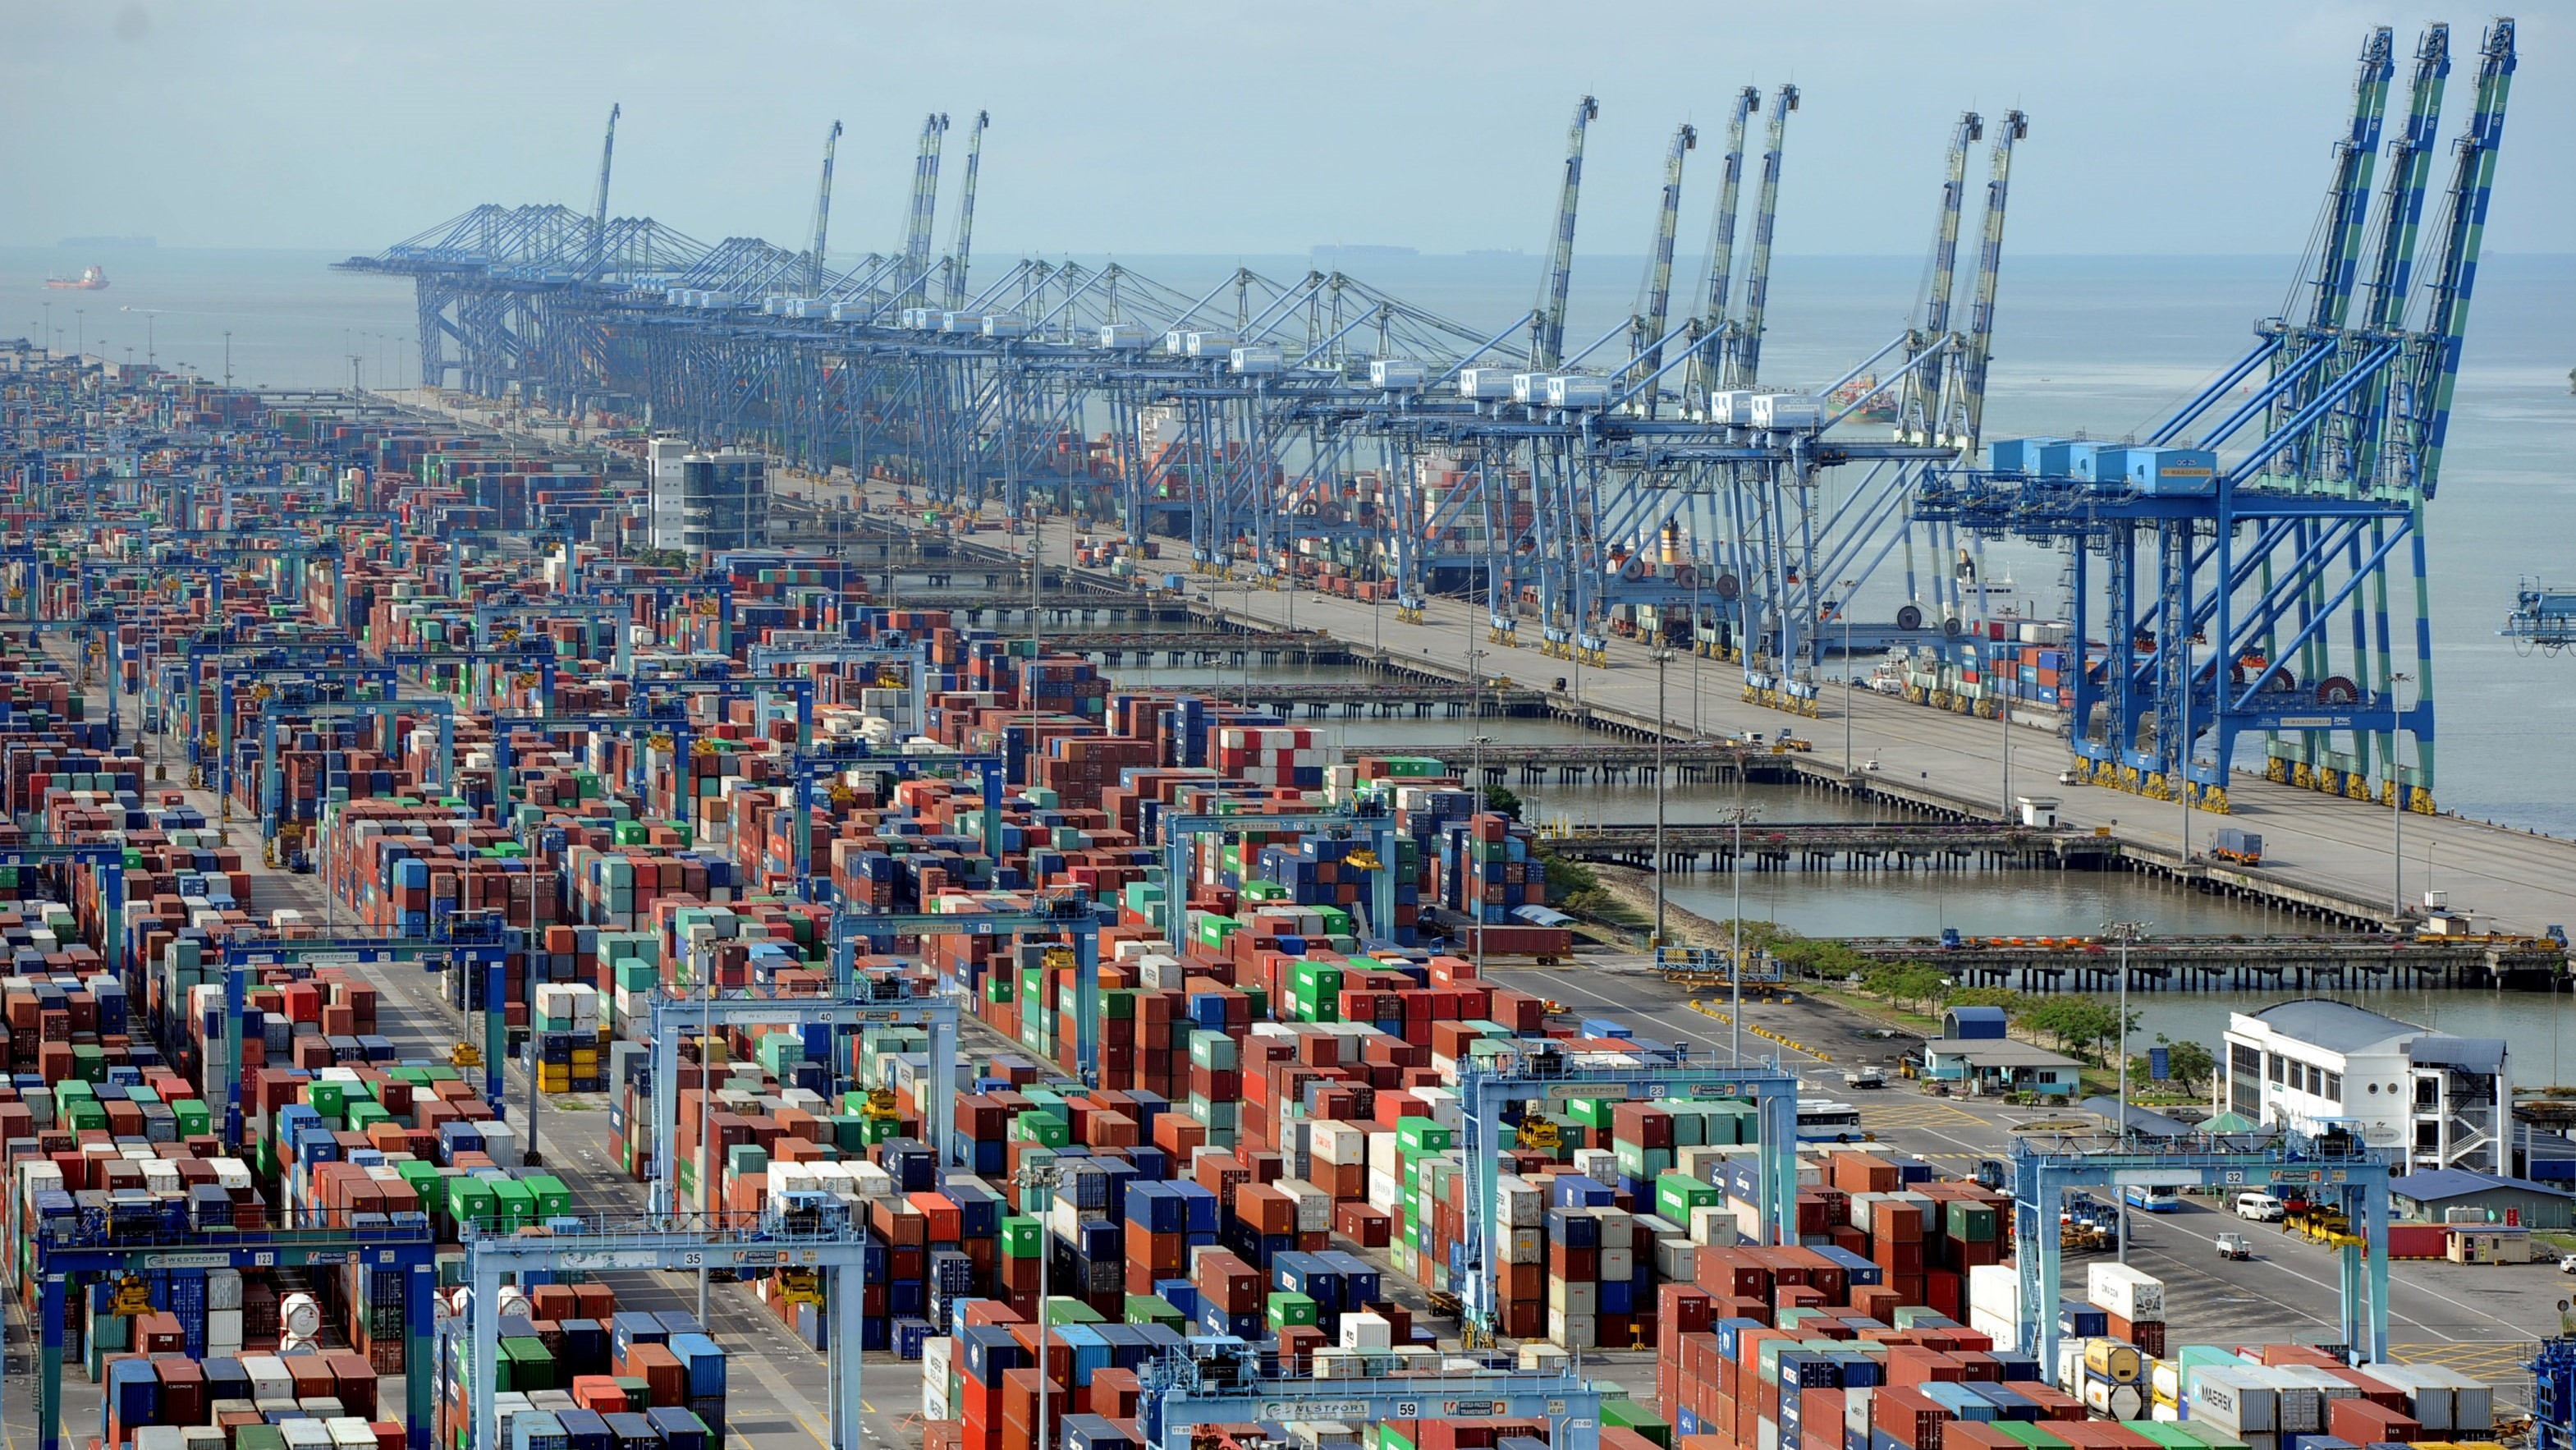 Strong first half for Port Klang's Westports, but can it win back traffic from Singapore? 1